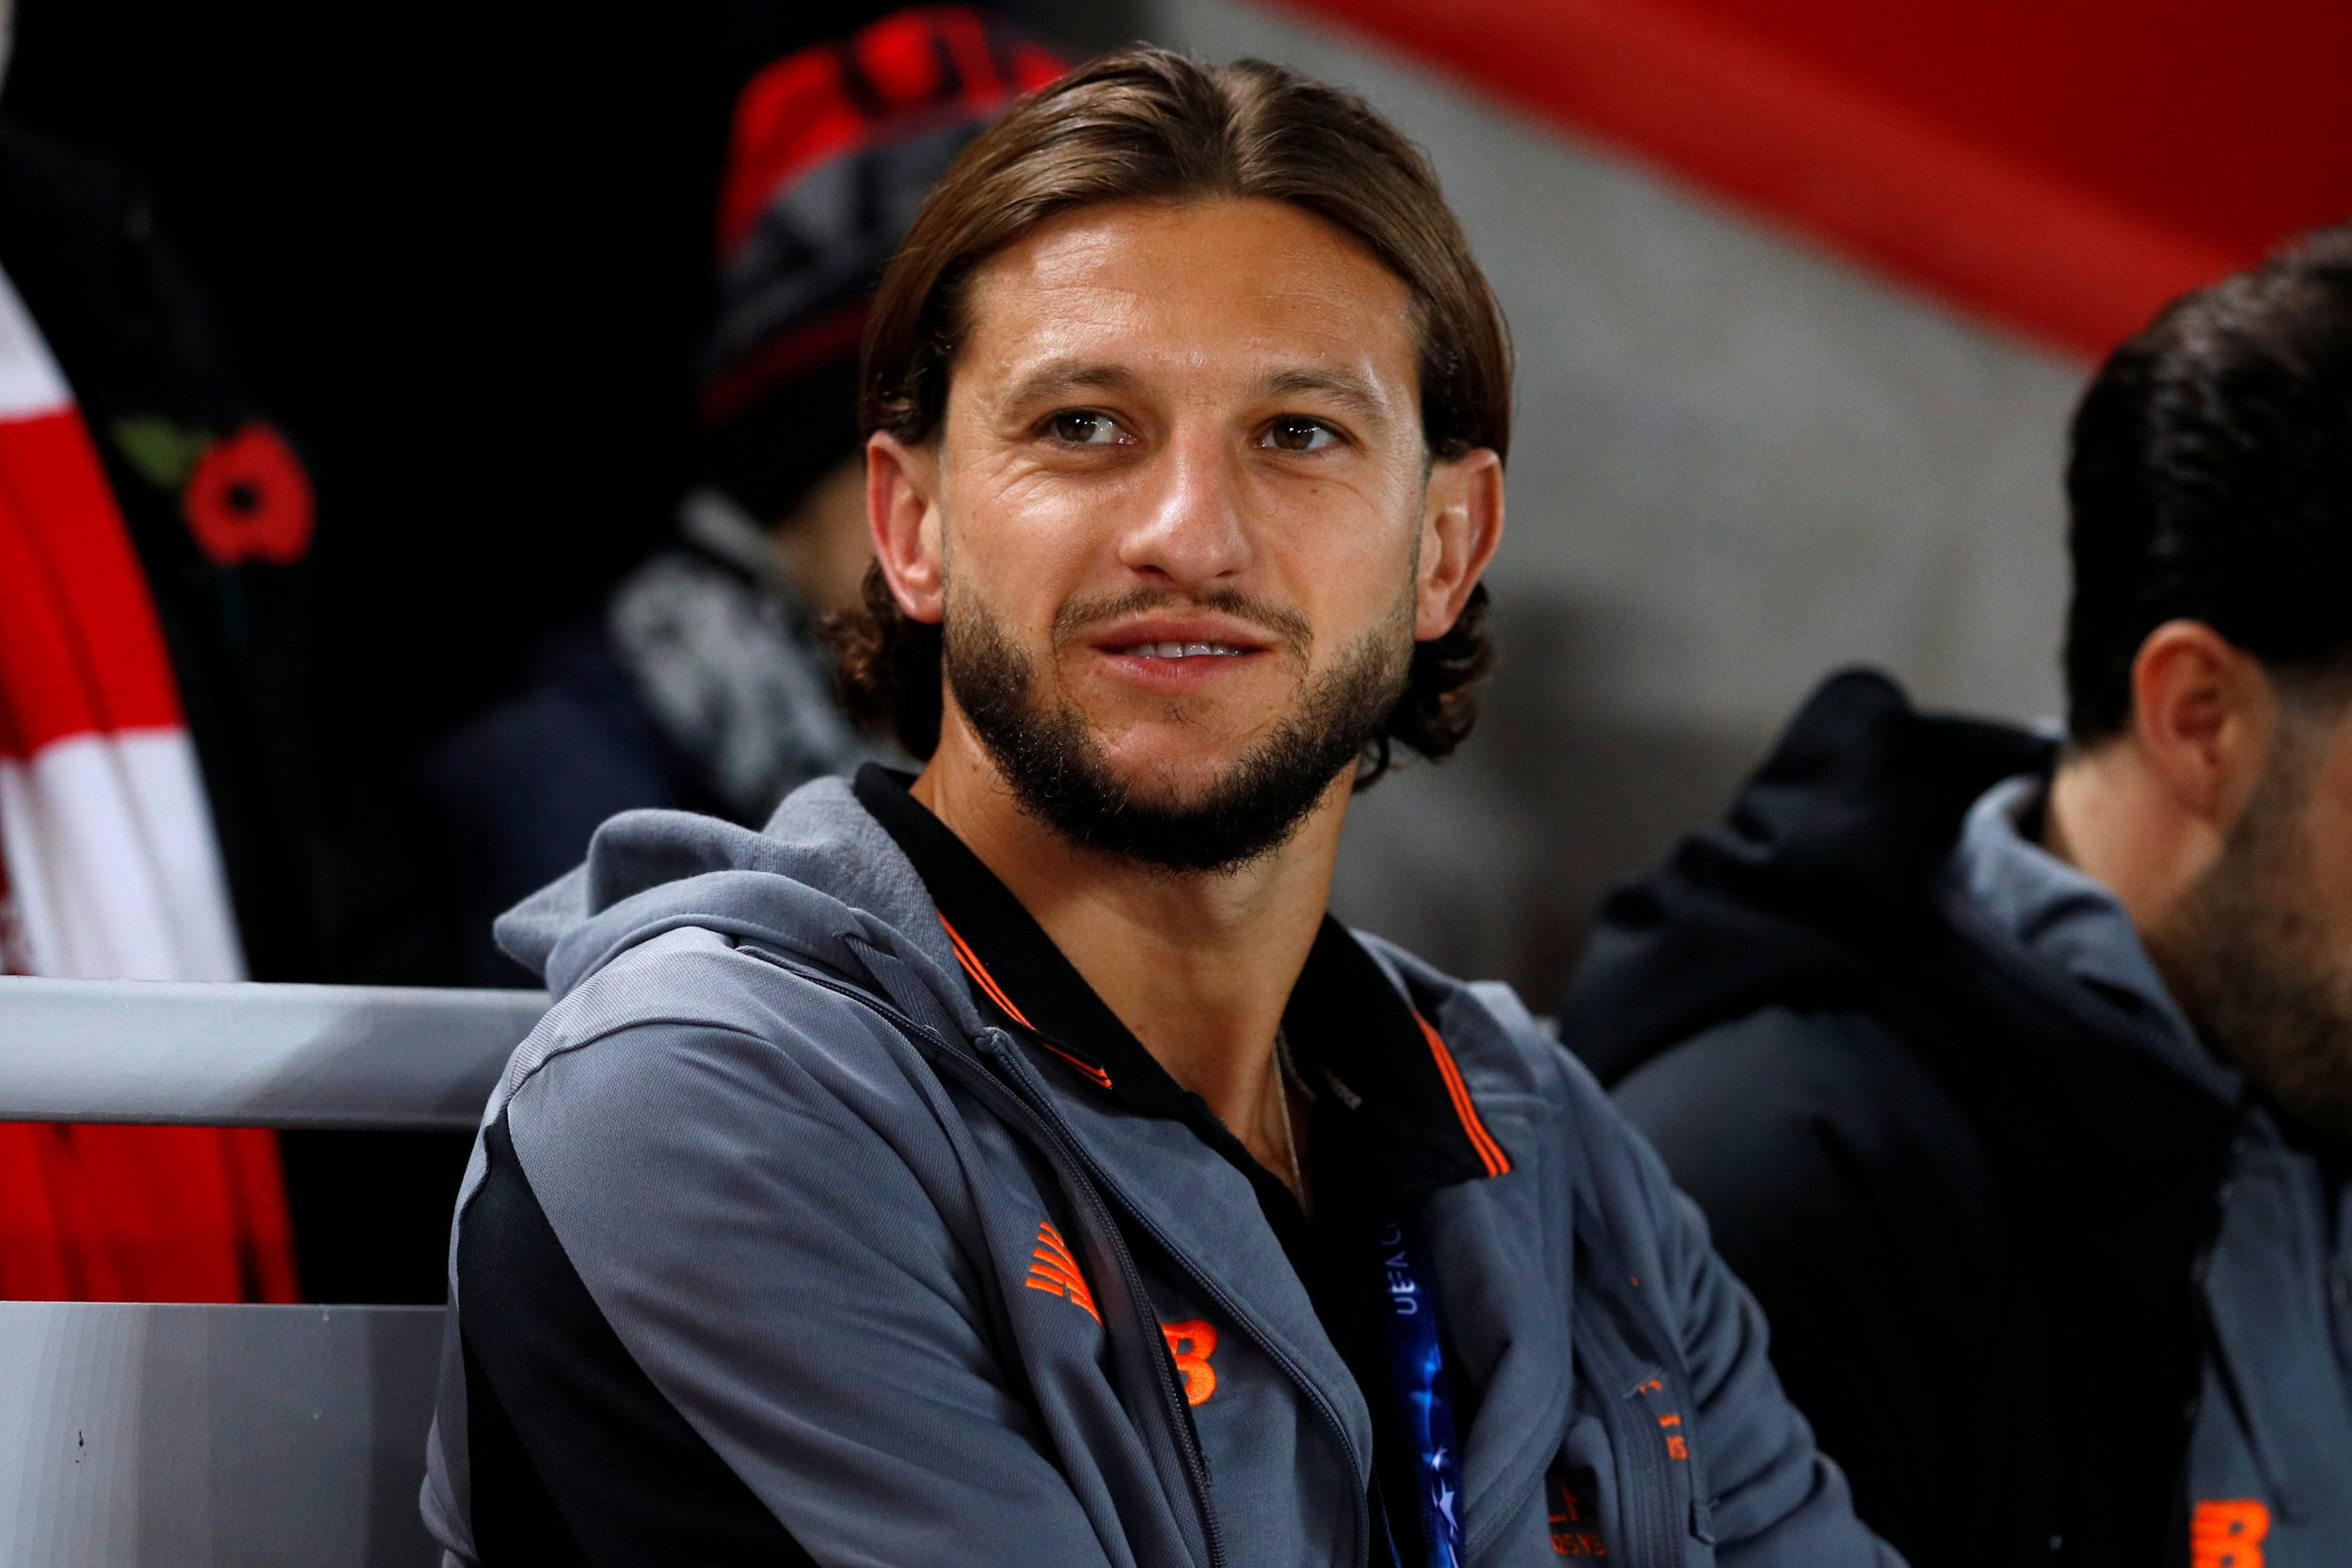 Adam Lallana penciled in to feature against Southampton on November 18